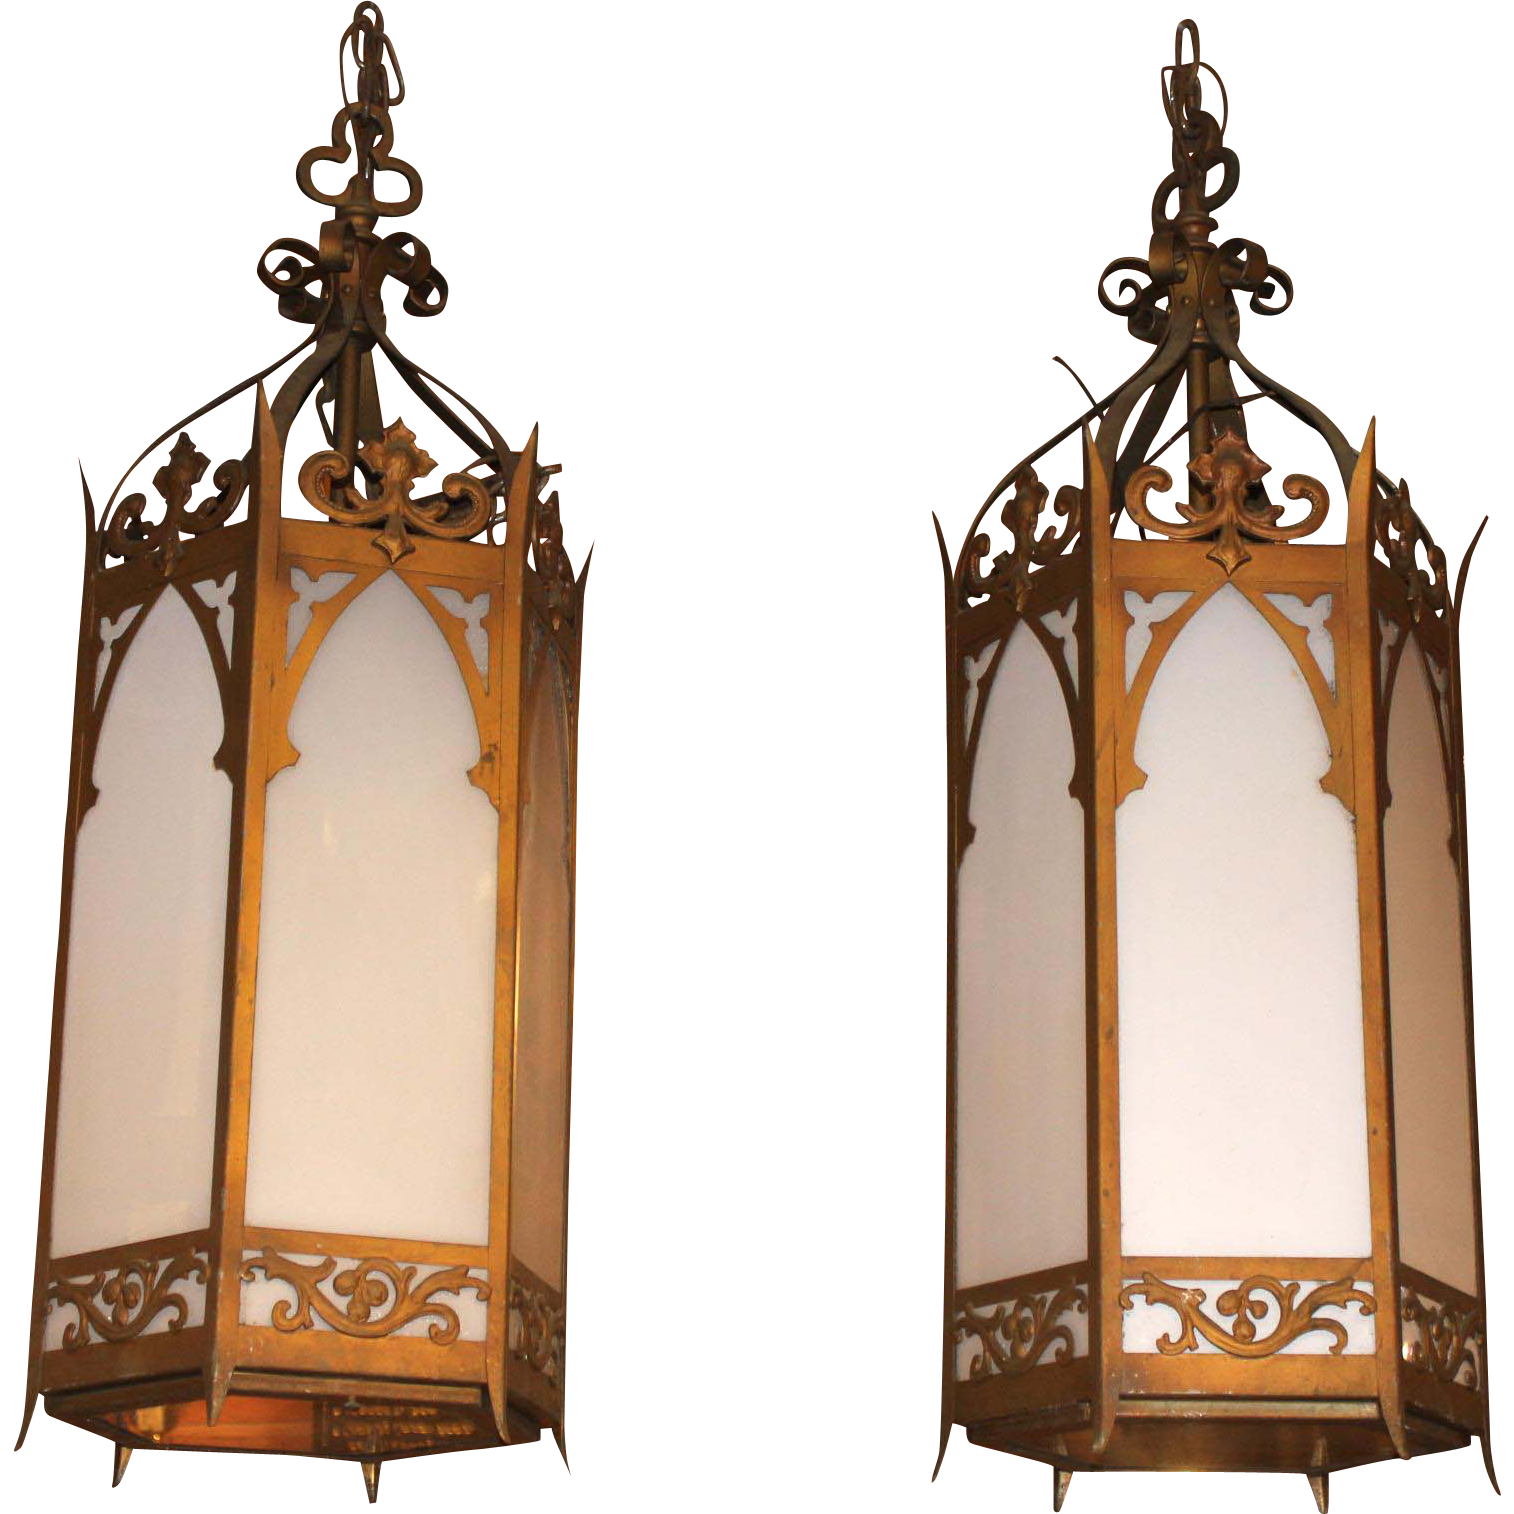 Pair of Hexagonal Iron Gothic Hanging Chandeliers or Lanterns